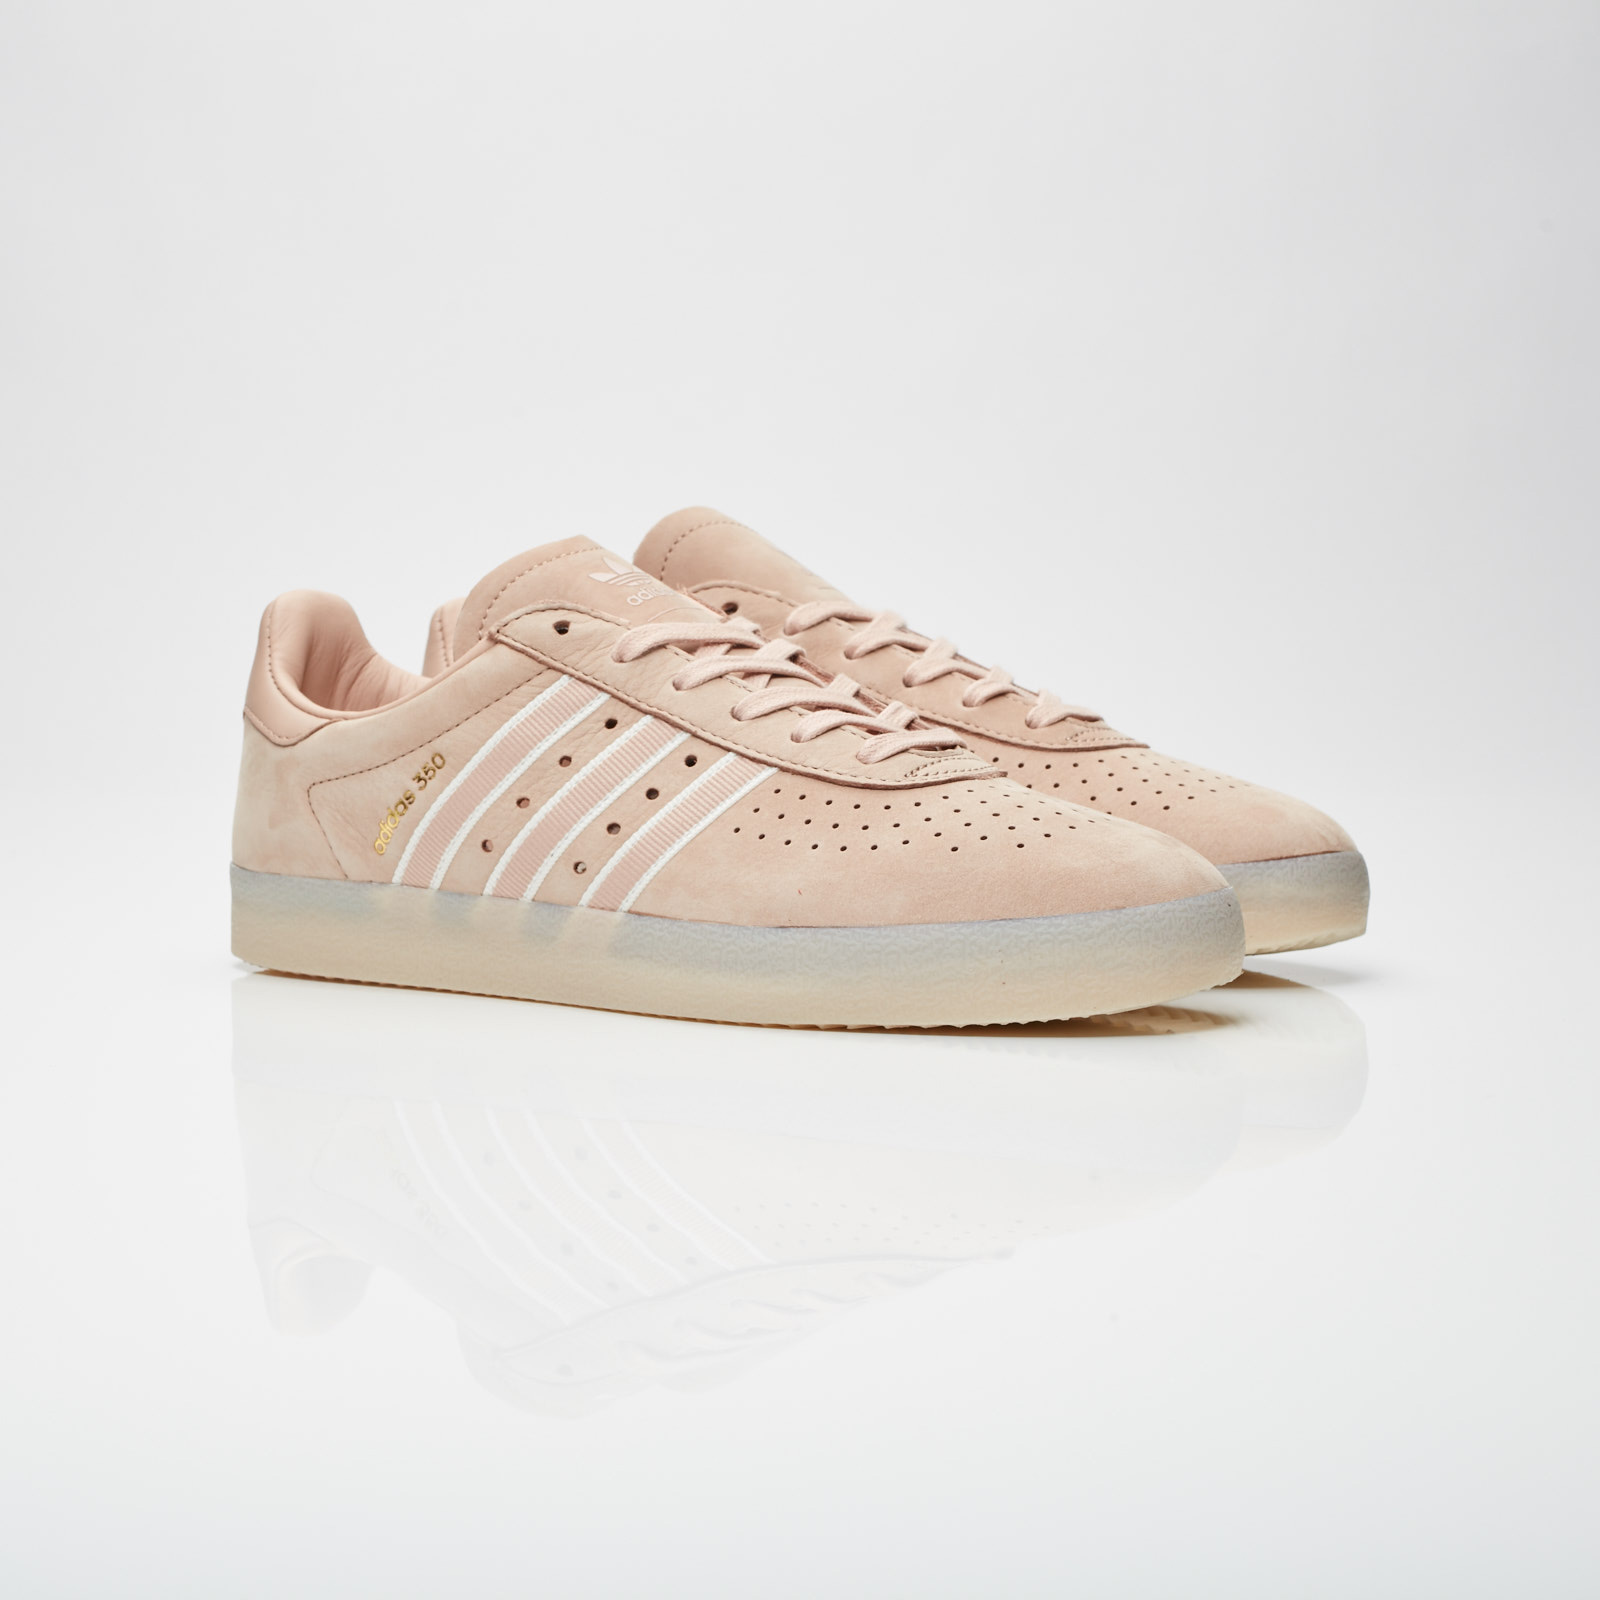 100% authentic 44bfe 00f7d adidas Consortium 350 x Oyster